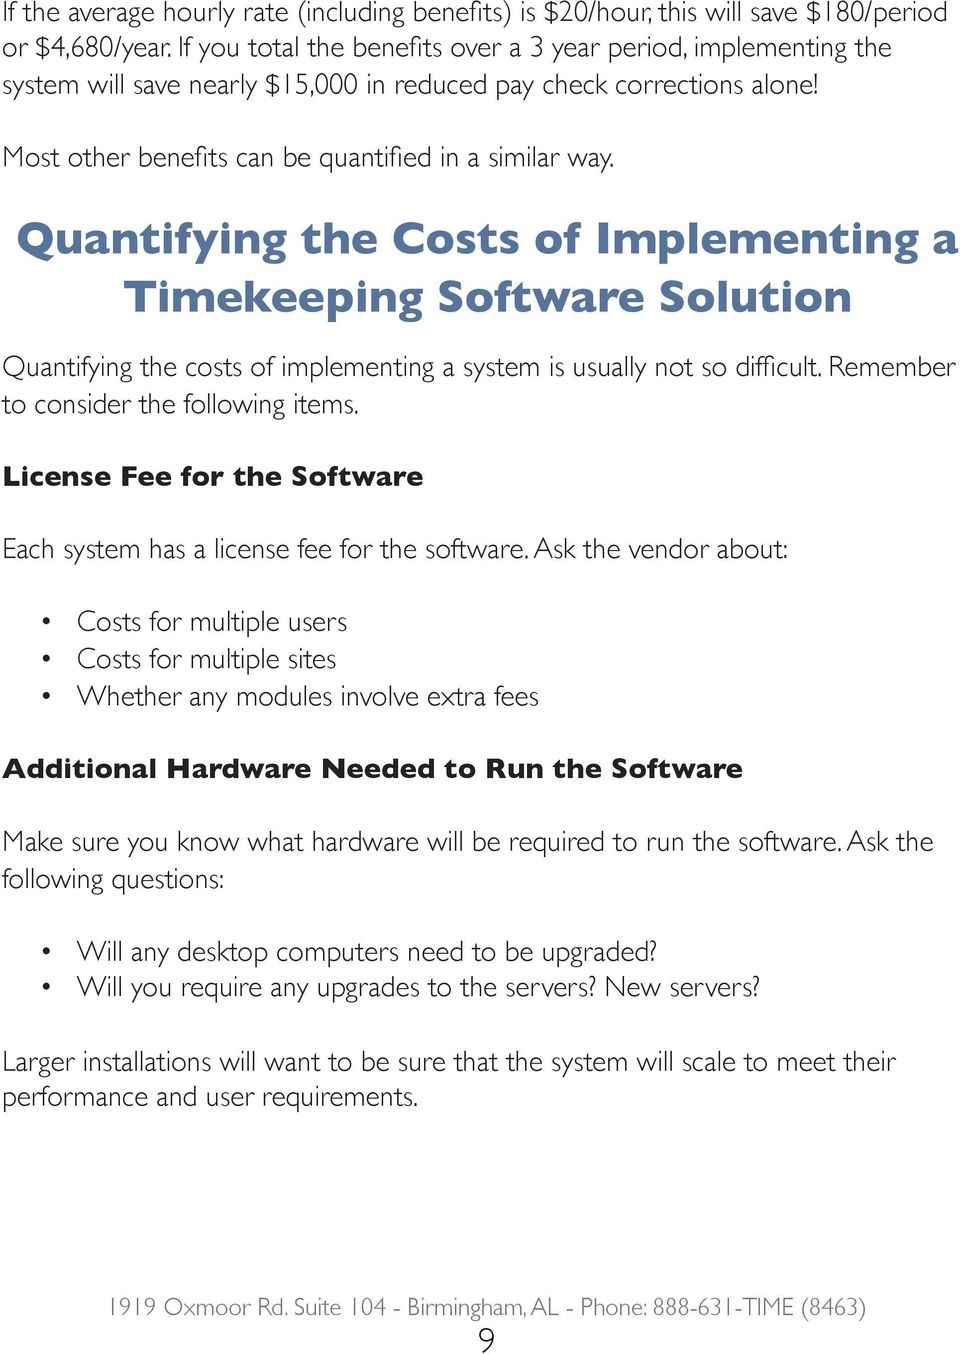 Quantifying the Costs of Implementing a Timekeeping Software Solution Quantifying the costs of implementing a system is usually not so difficult. Remember to consider the following items.